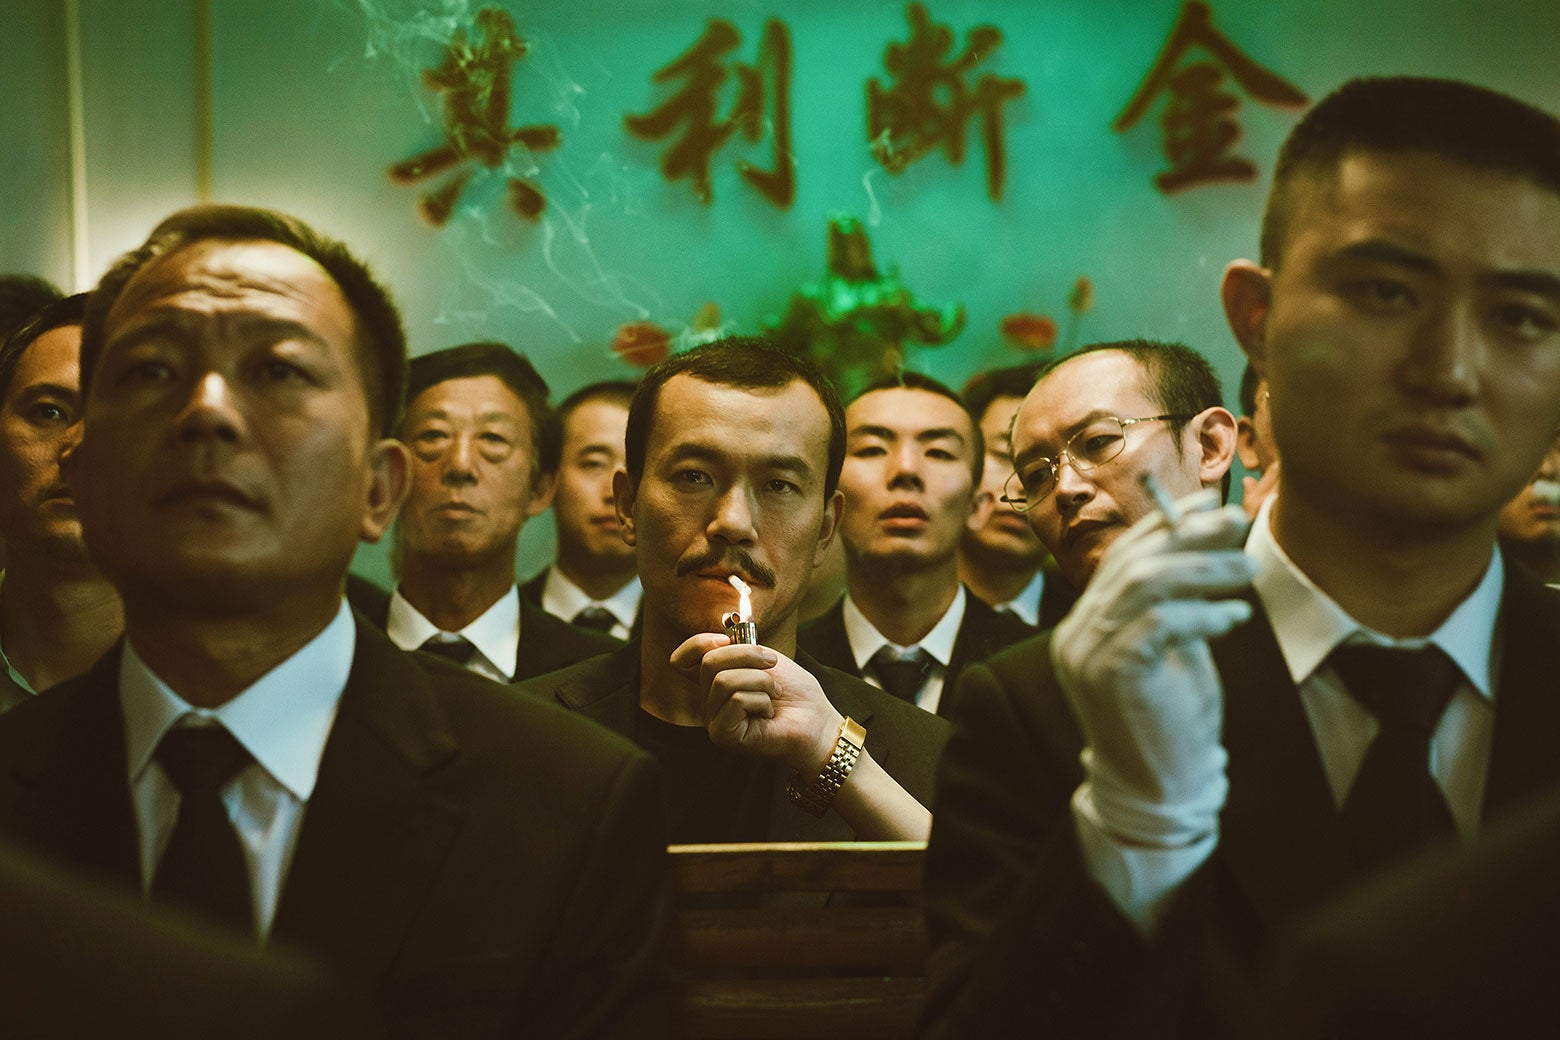 Bin lighting a cigarette in a crowded space in Ash Is Purest White.